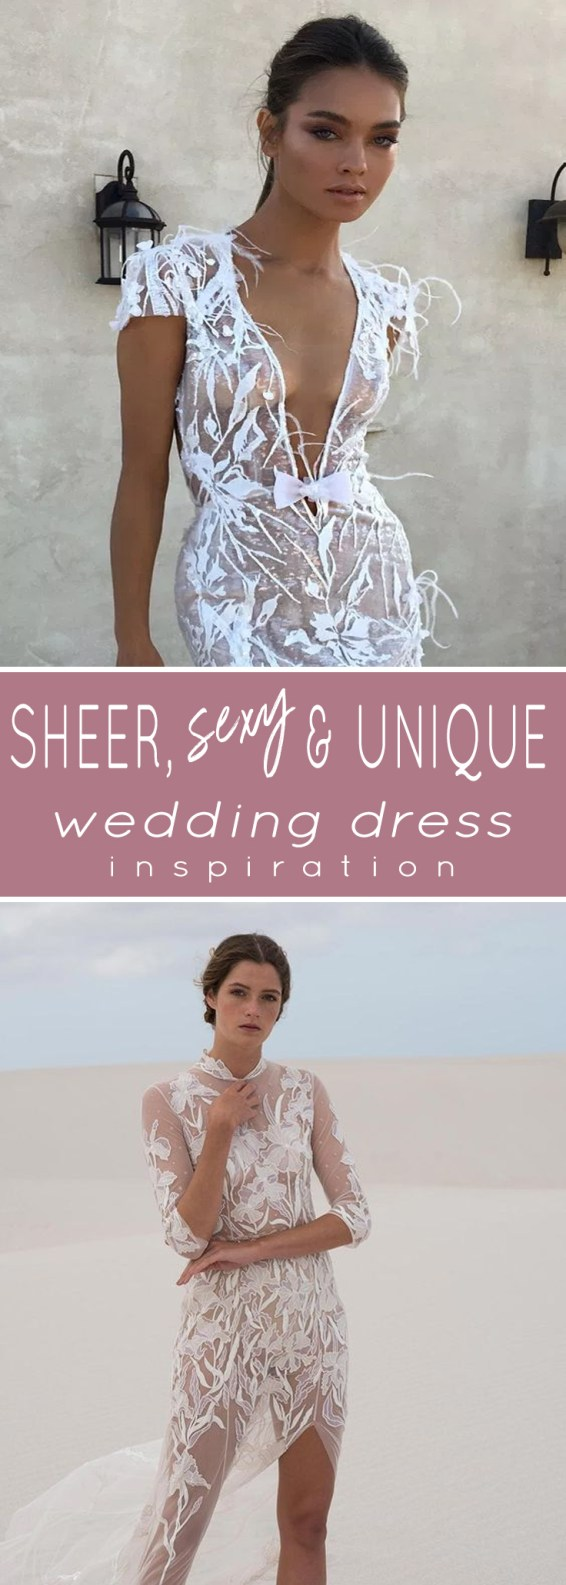 ALL THE BEST SHEER WEDDING DRESS INSPIRATION YOU CAN DREAM OF